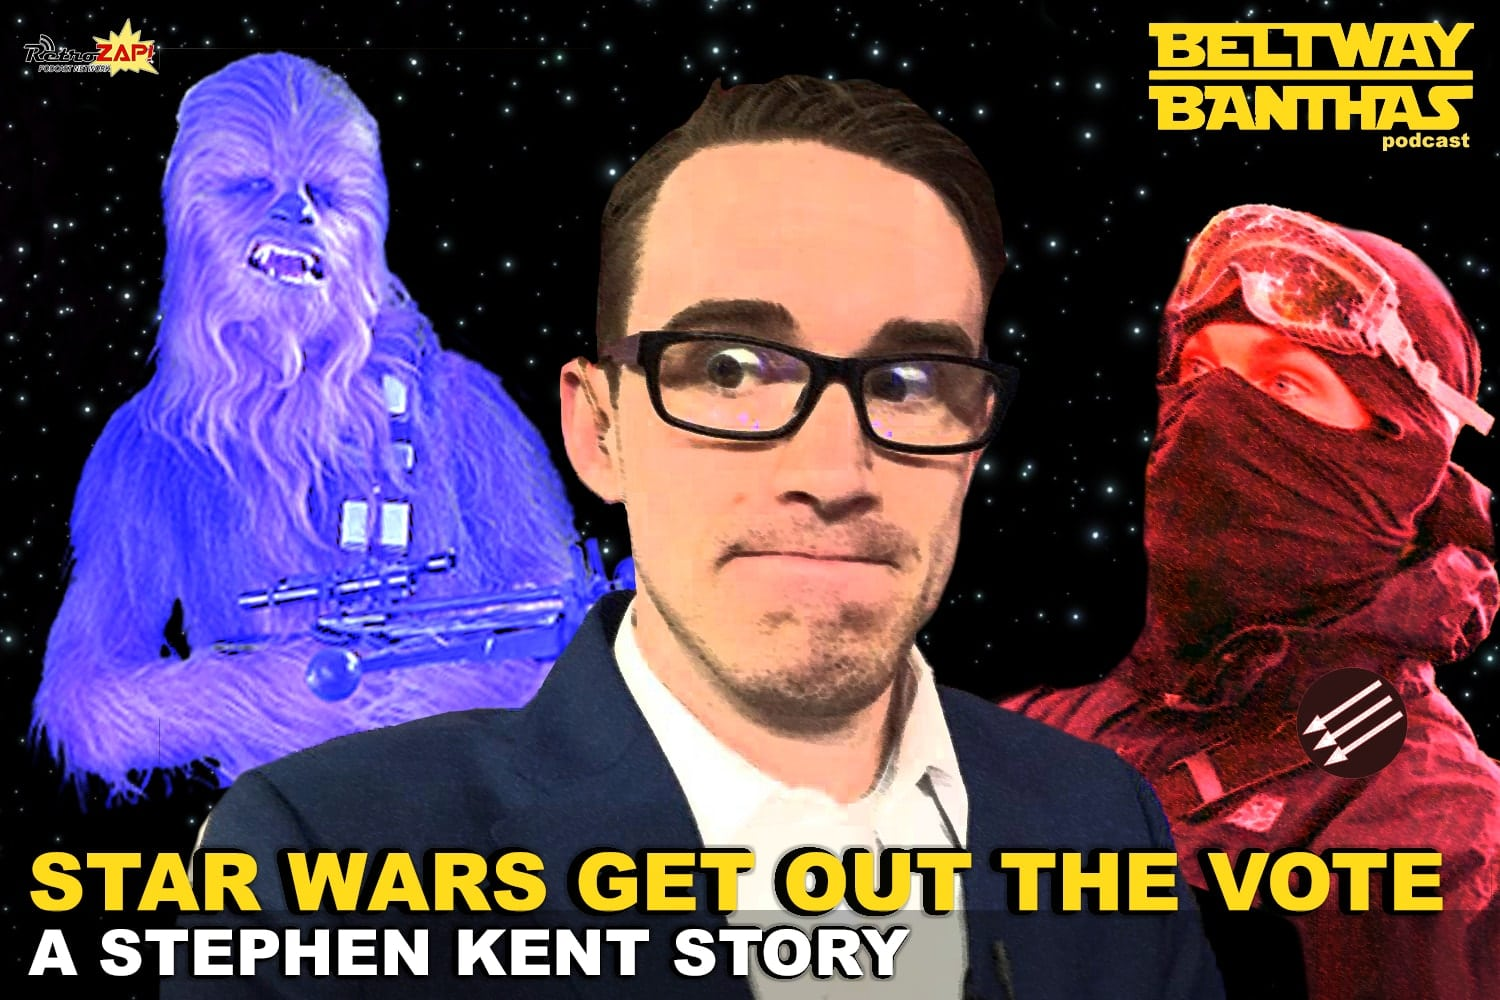 Star Wars Get Out The Vote: A Stephen Kent Story